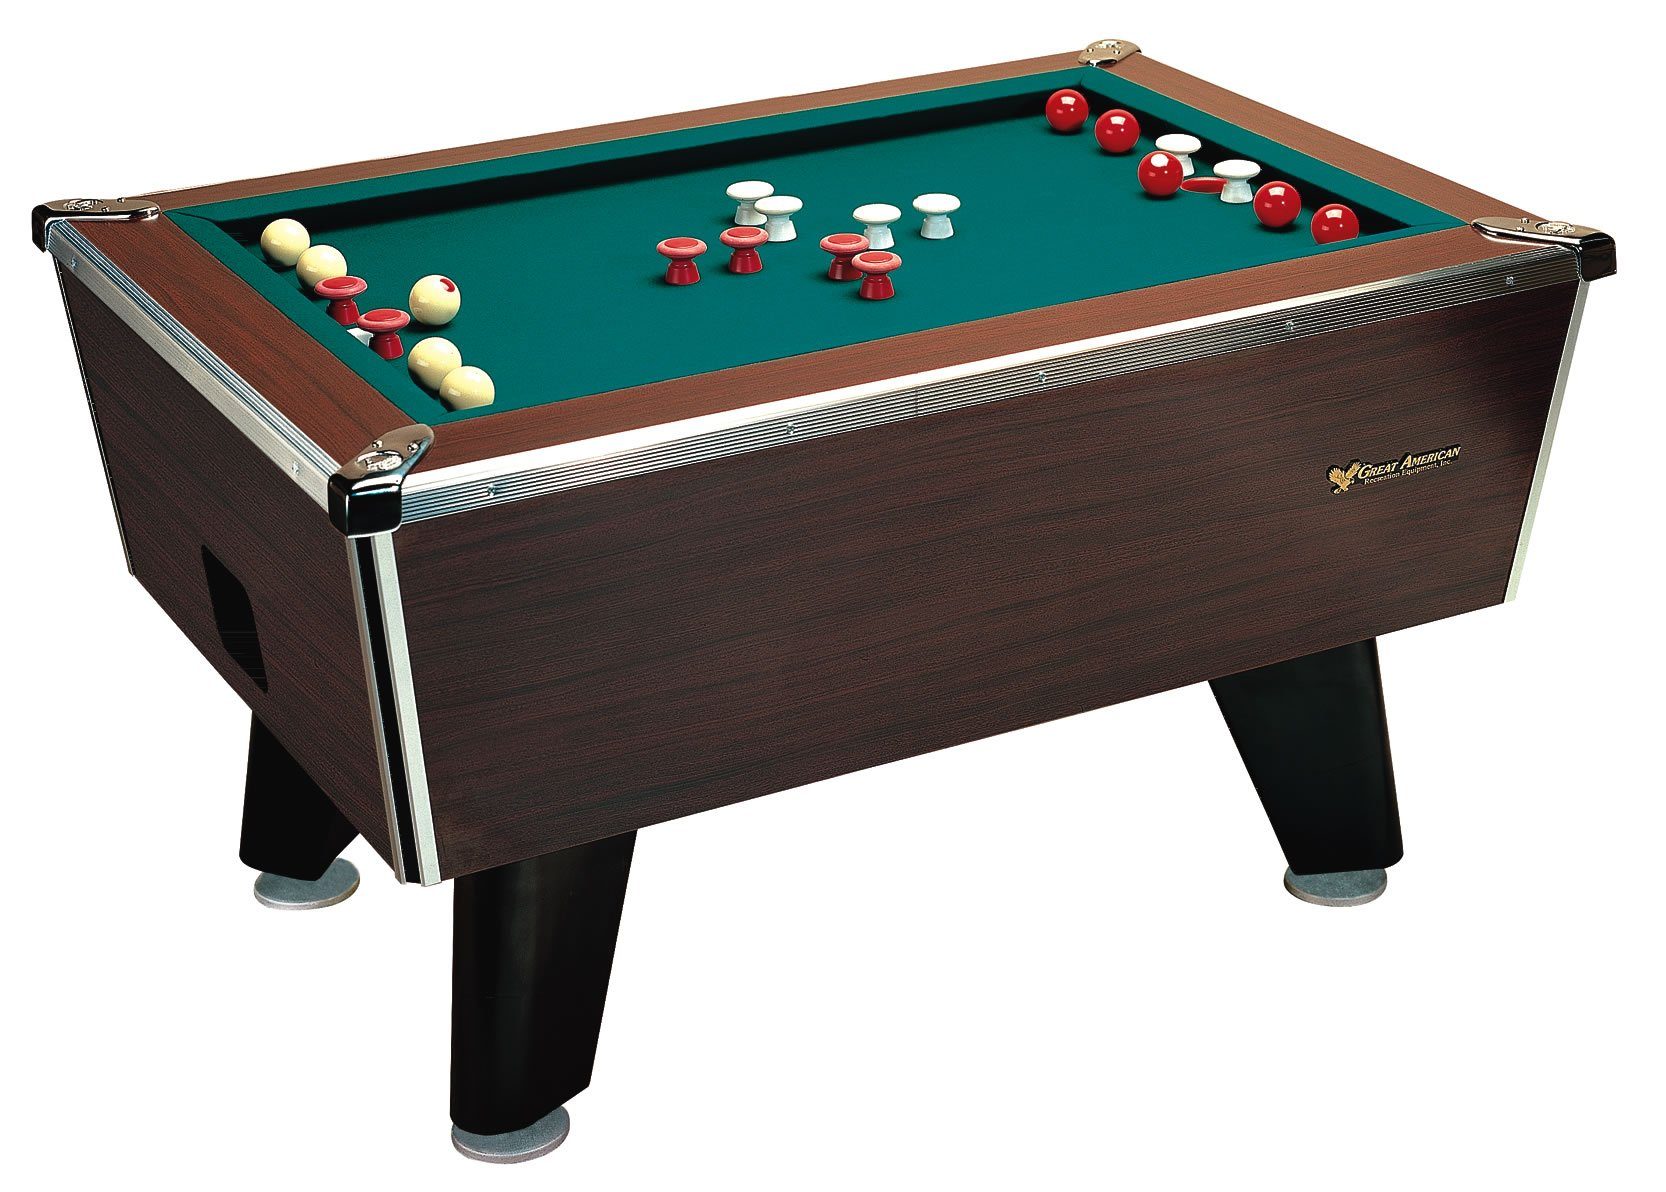 Sell Your Bumper Pool Table For The Most Cash At We Buy Pinball - Best place to sell pool table